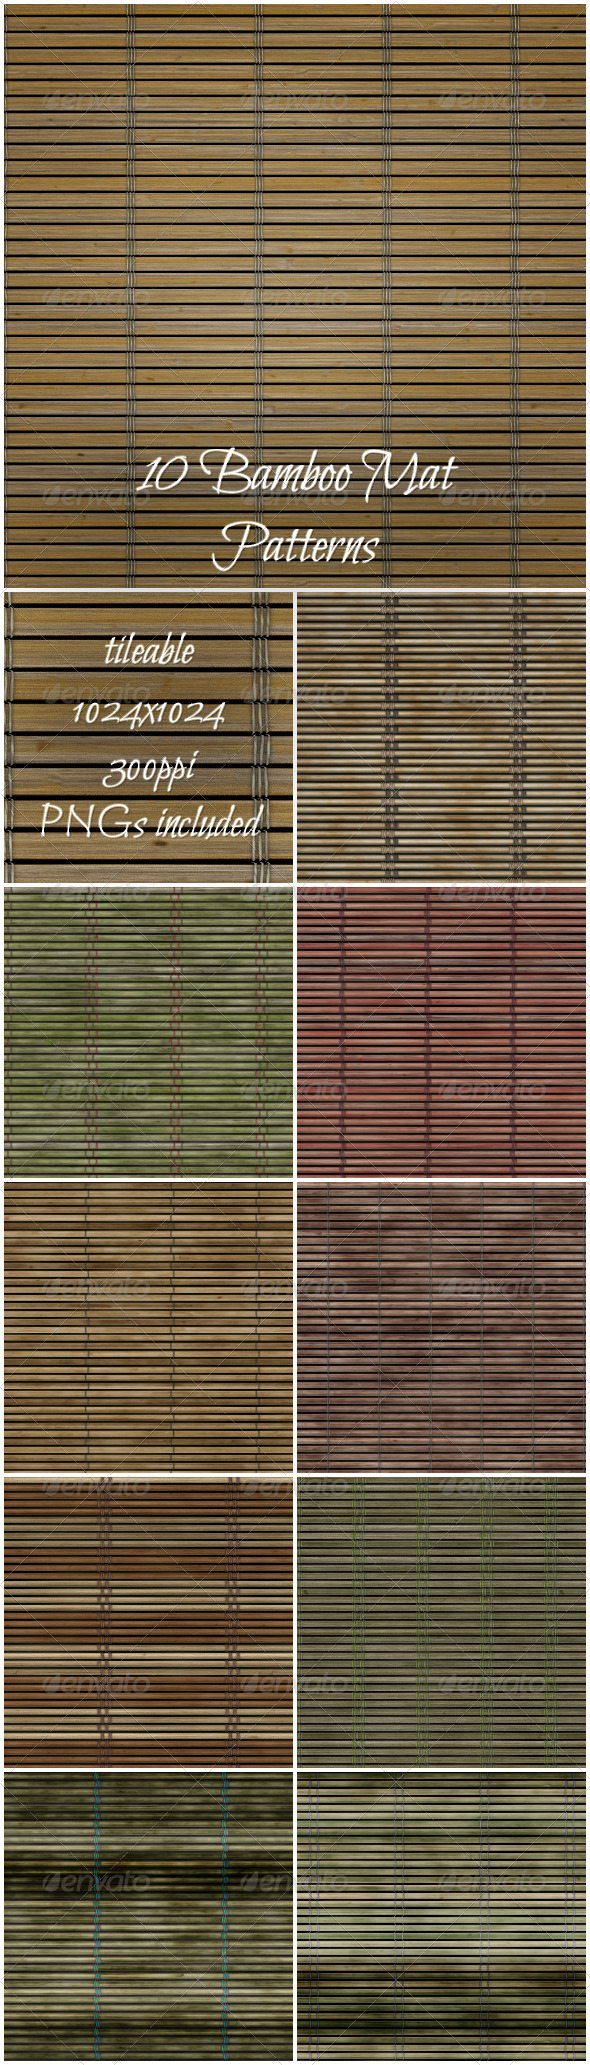 GraphicRiver 10 Bamboo Mat Patterns 6299616